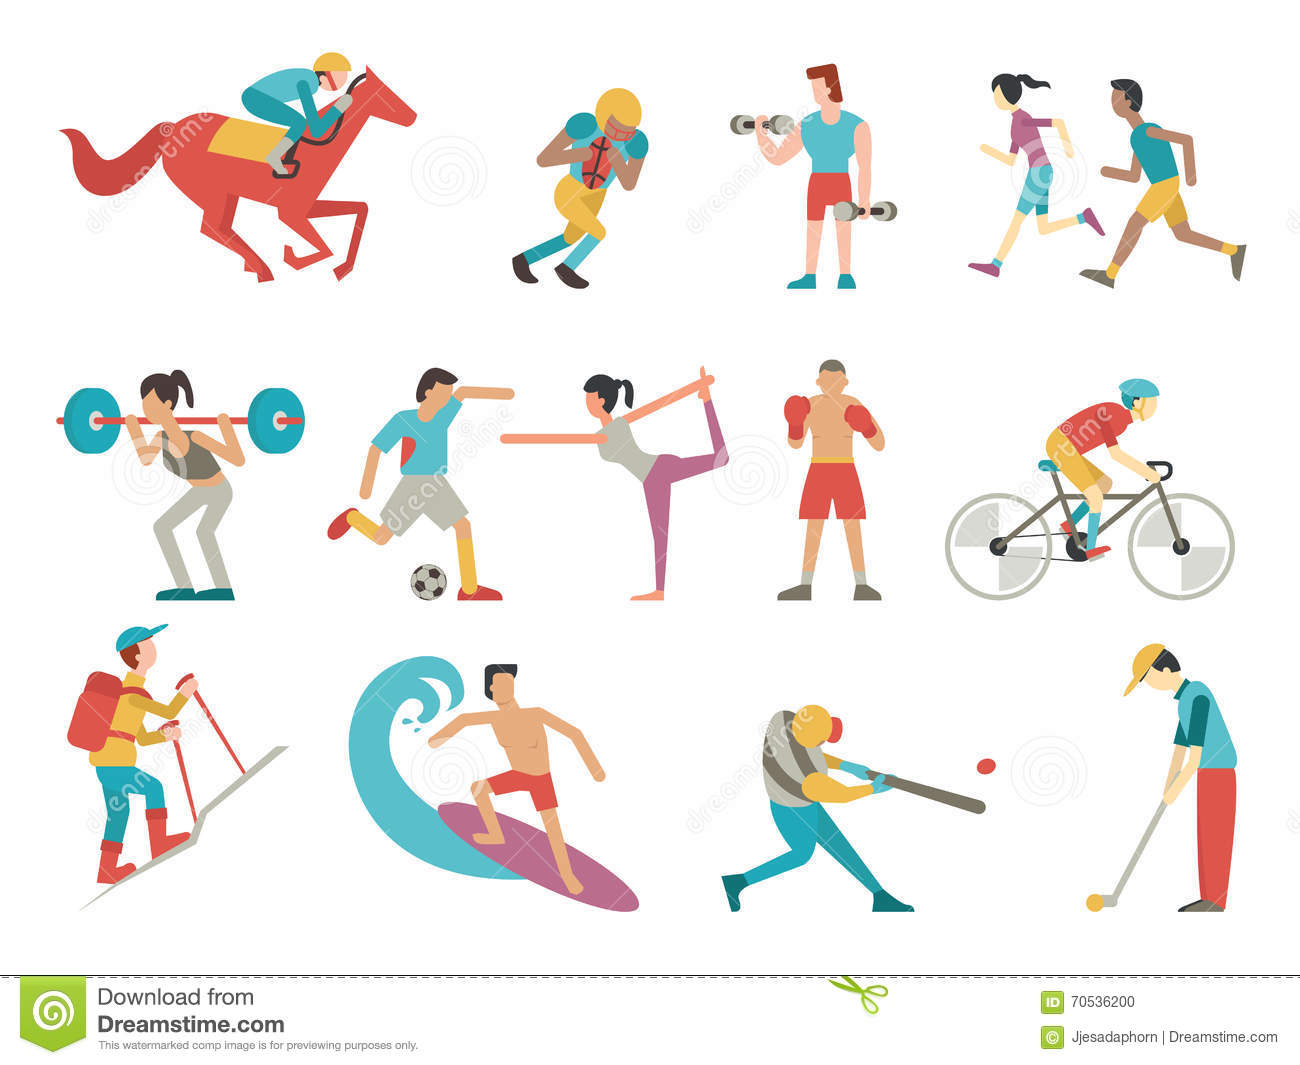 Simple Character Design Illustrator : Sport people set stock vector illustration of american